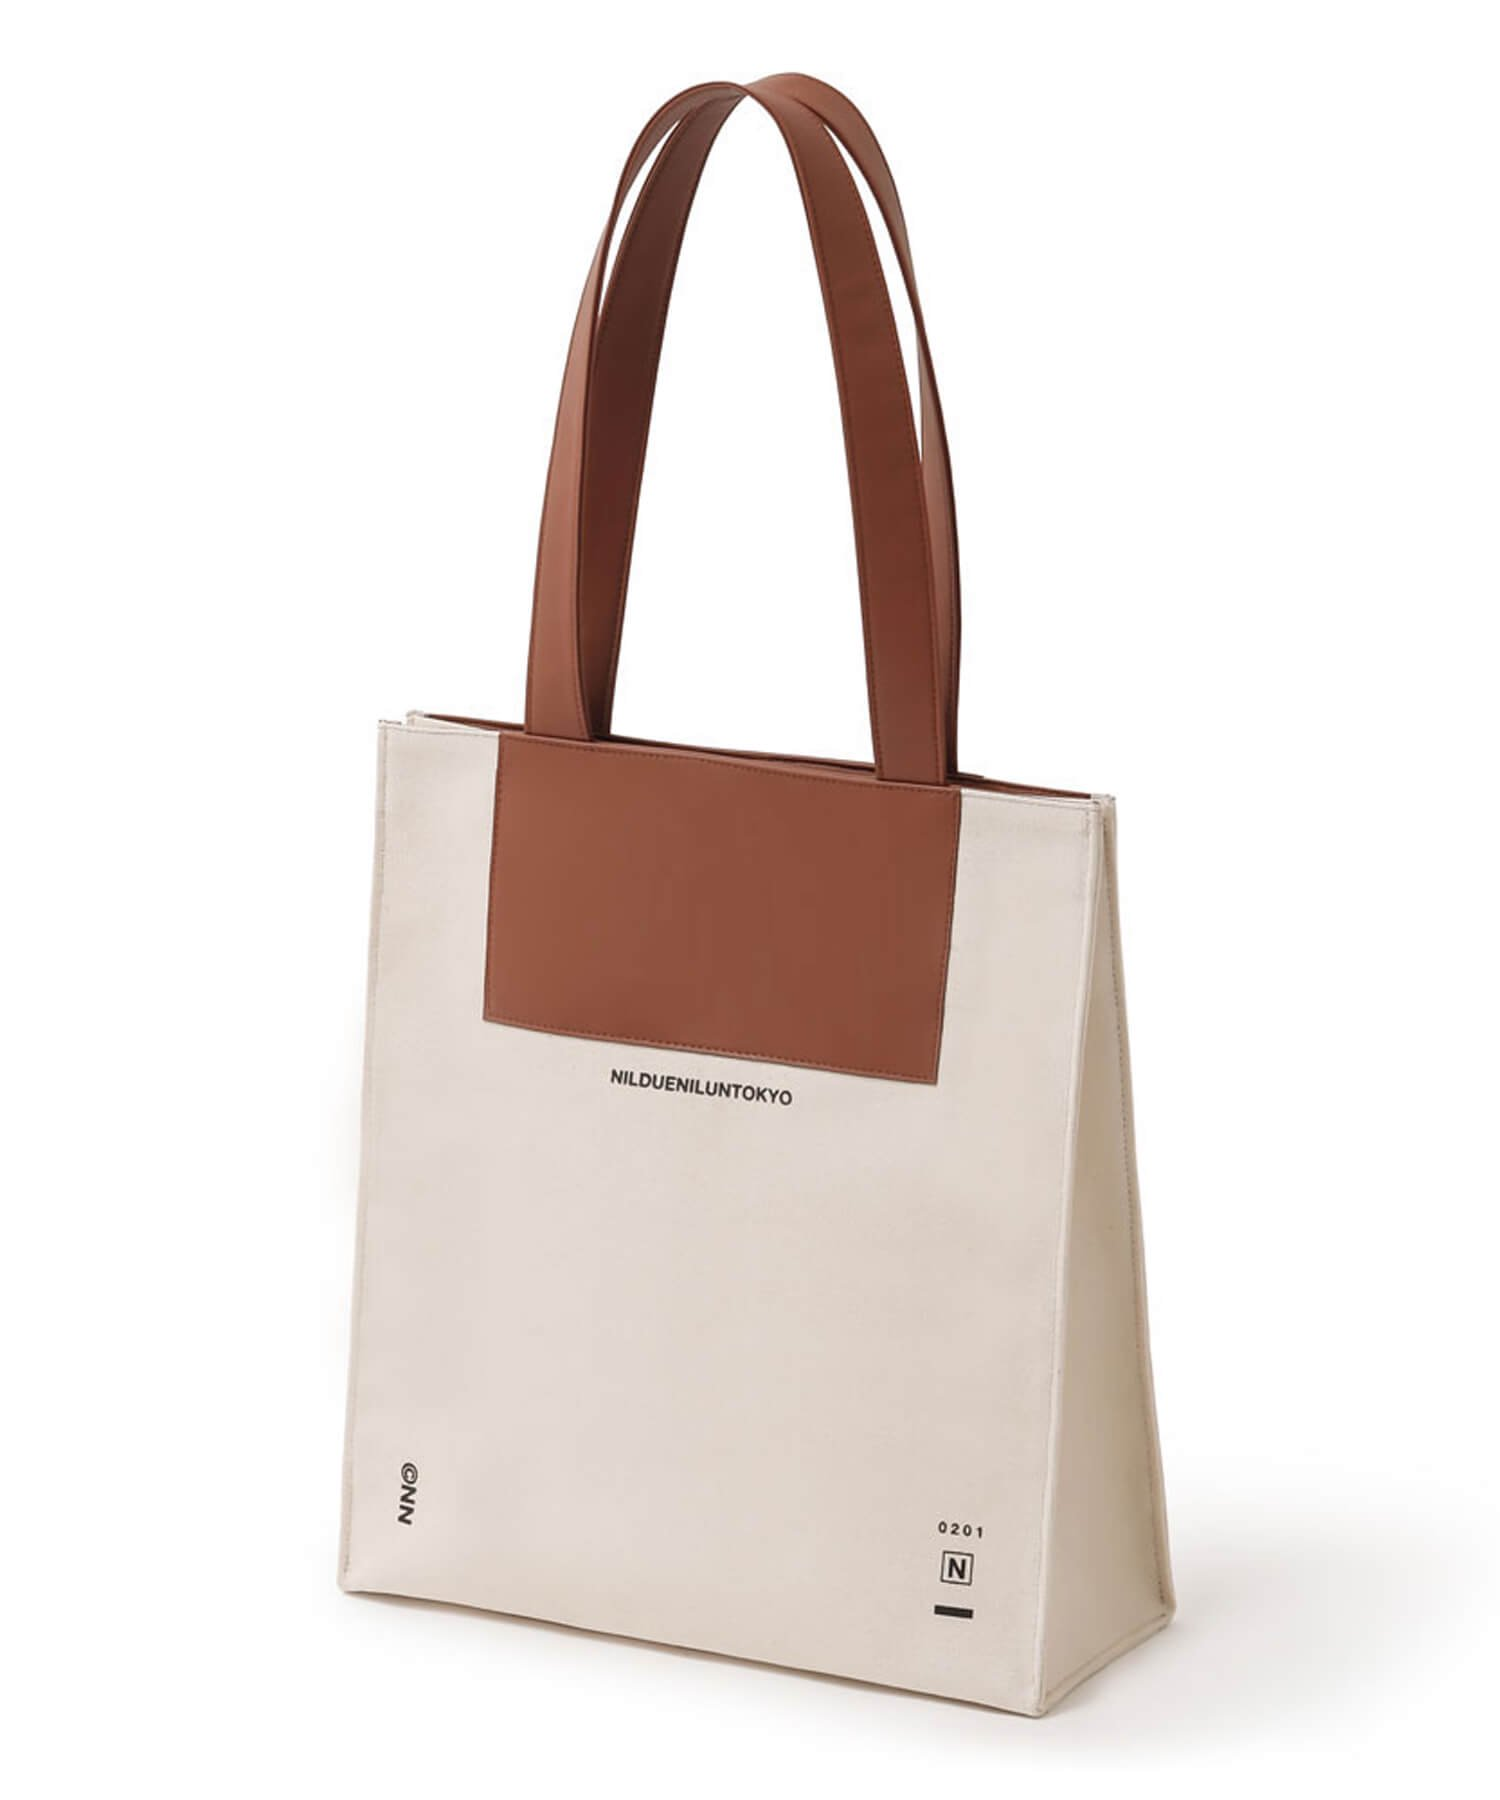 NIL DUE / NIL UN TOKYO / ニル デュエ / ニル アン トーキョー |  CANVAS LEATHER TOTE (BROWN) 商品画像